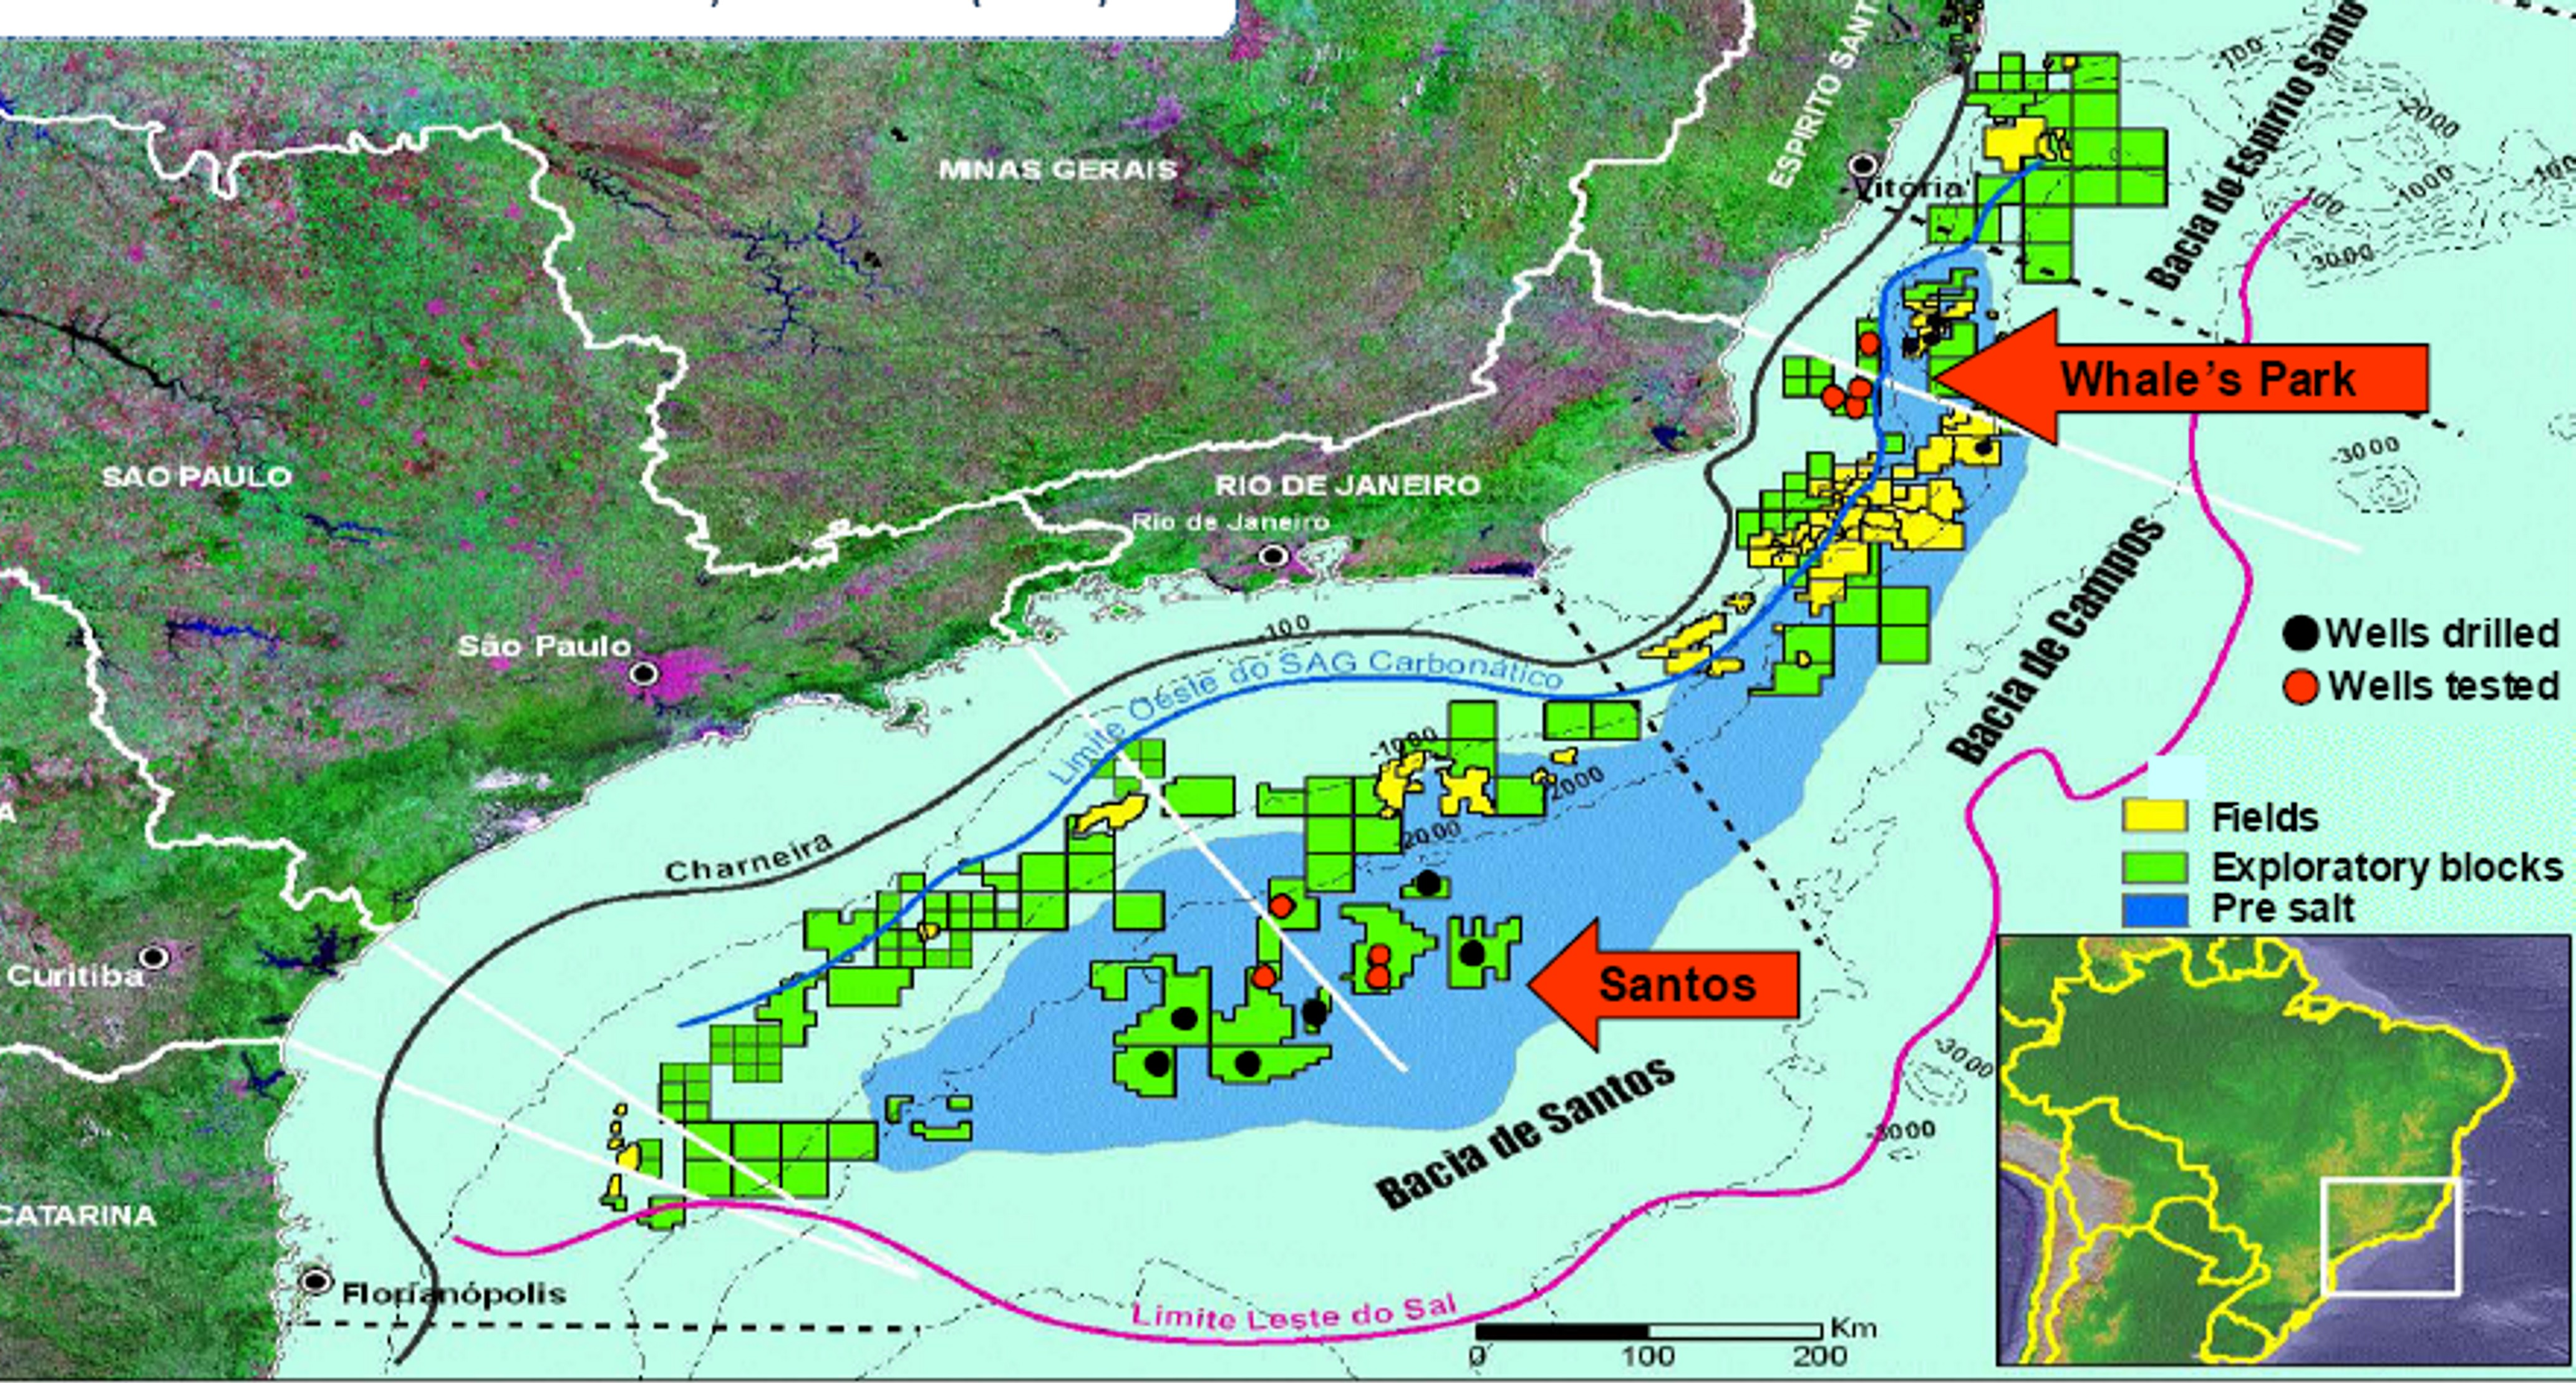 Petrobras_Floating-GTL_FPSO_Pre-salt_Map